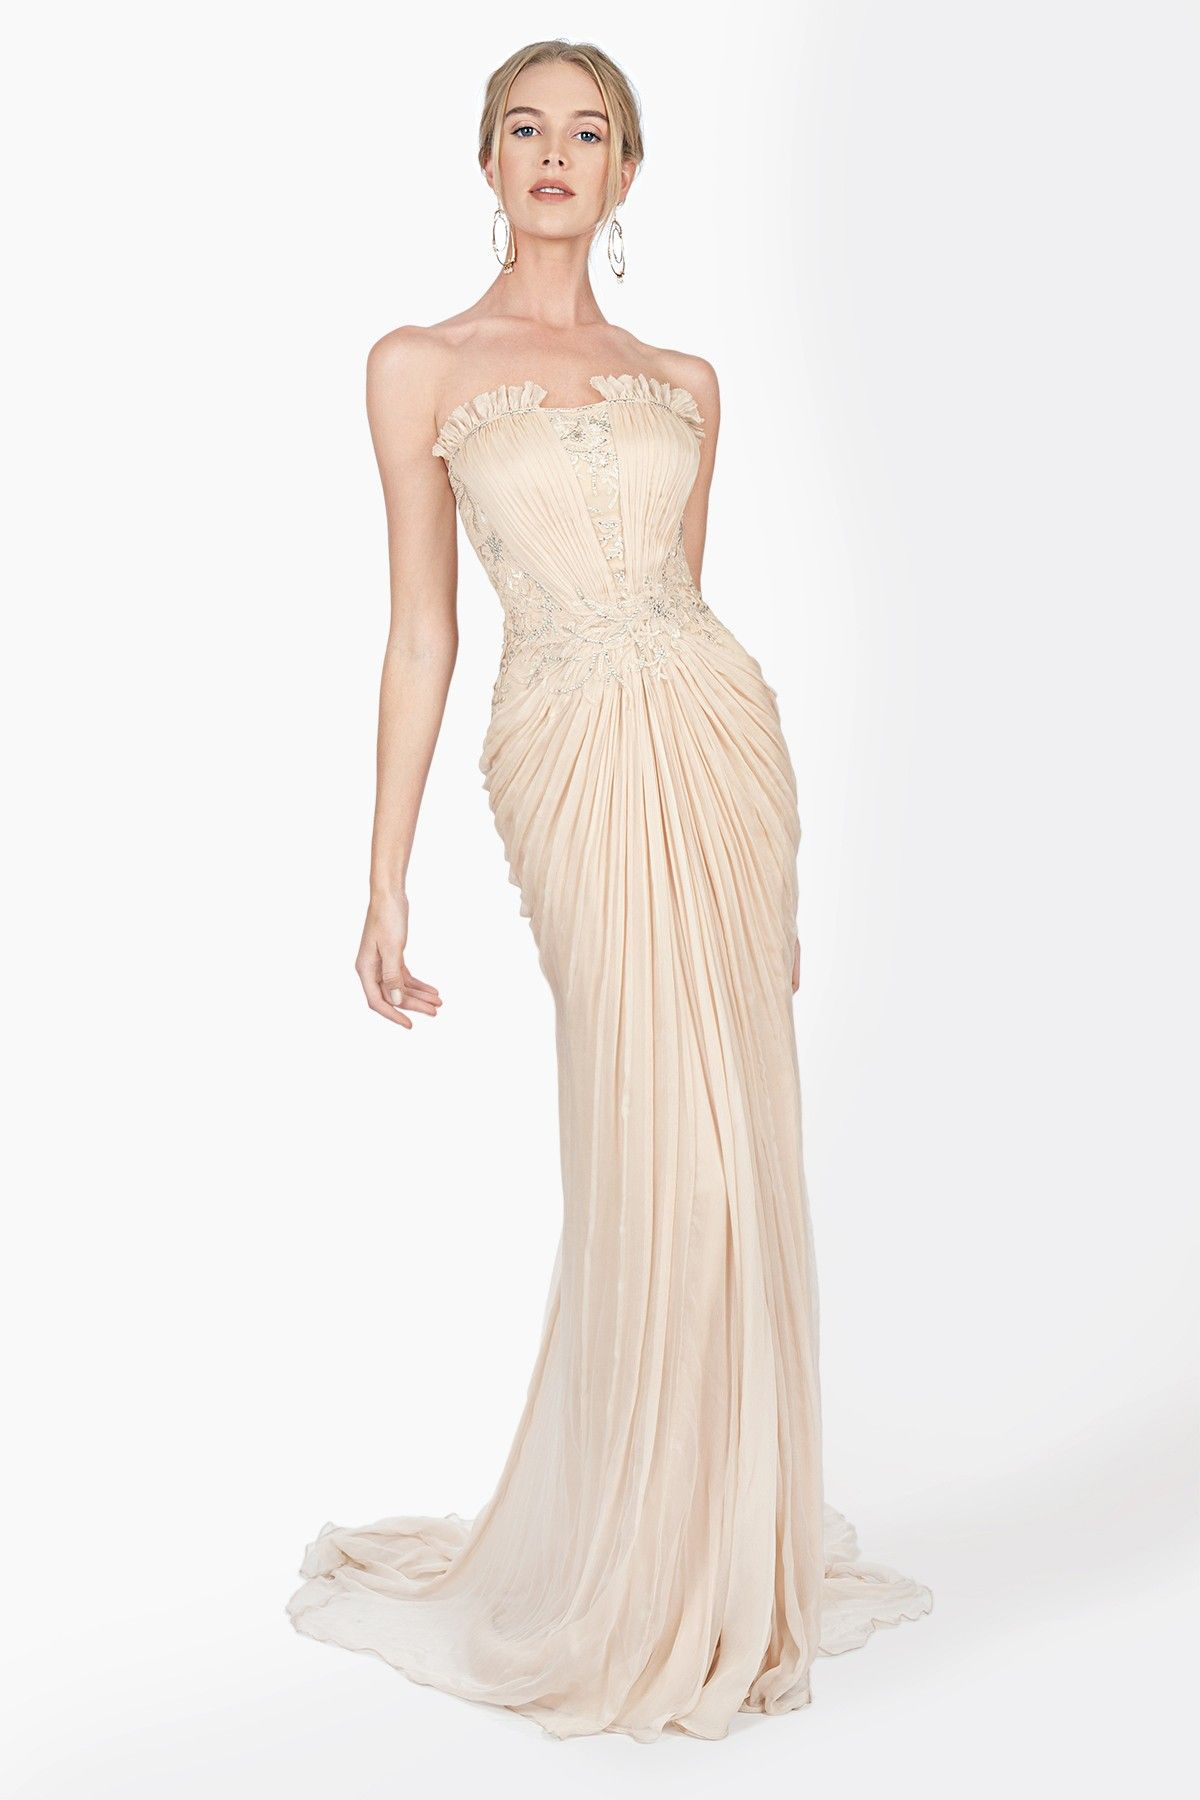 Tadashi shoji wedding guest dresses  Embellished Lace and Chiffon Strapless Gown in Desert Bloom